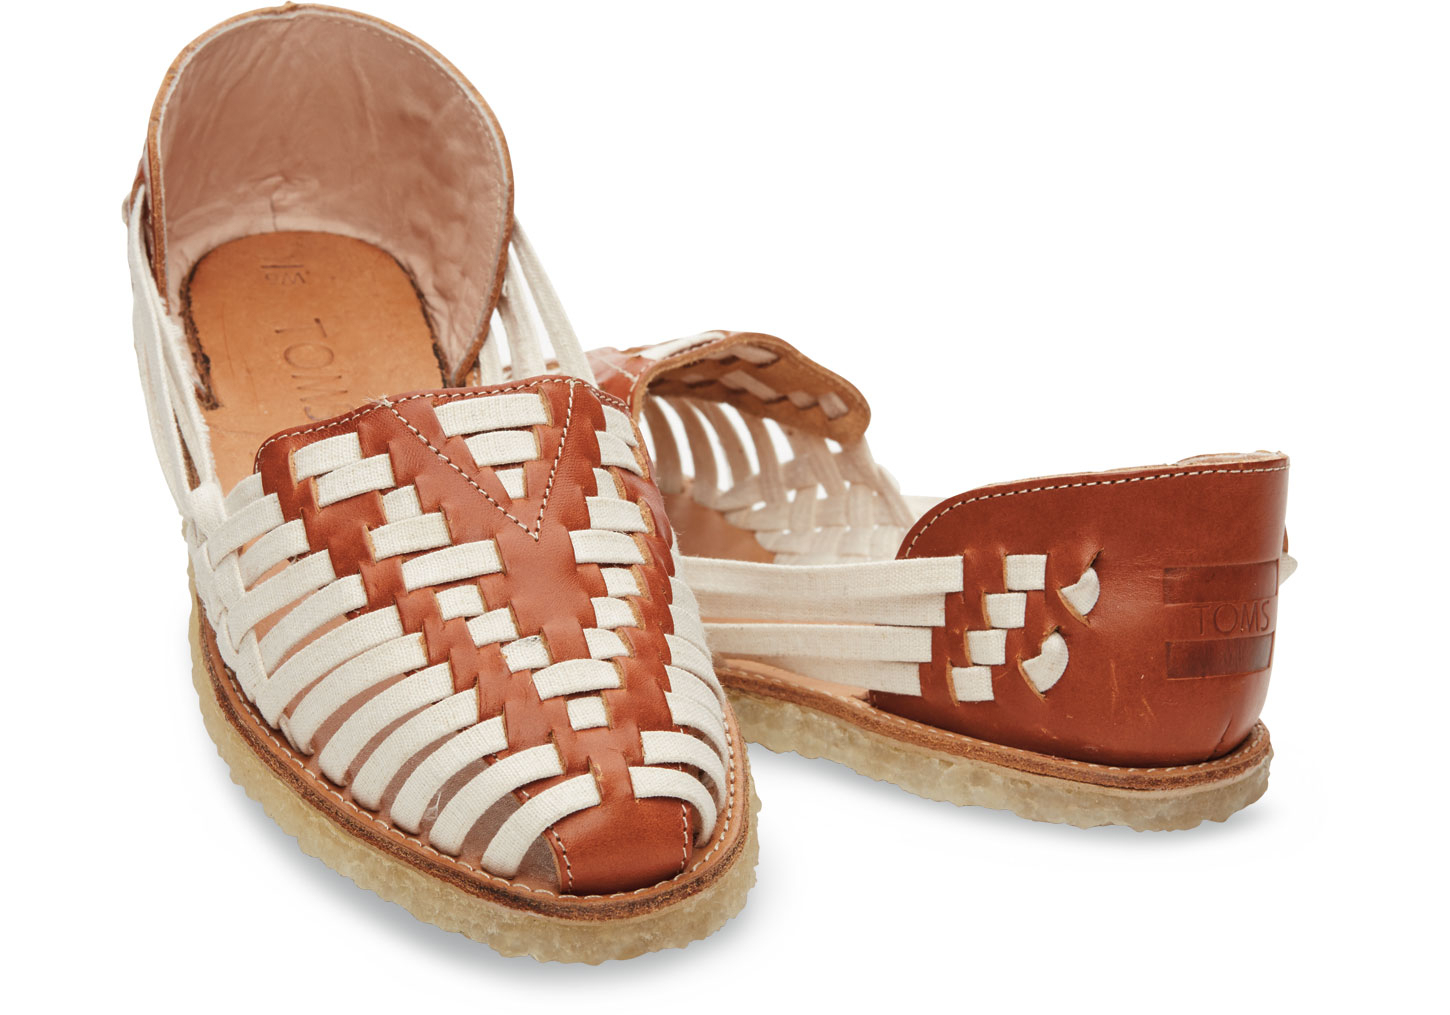 8467f8920ca Lyst - TOMS White Cognac Leather And Textile Women s Huaraches in ...